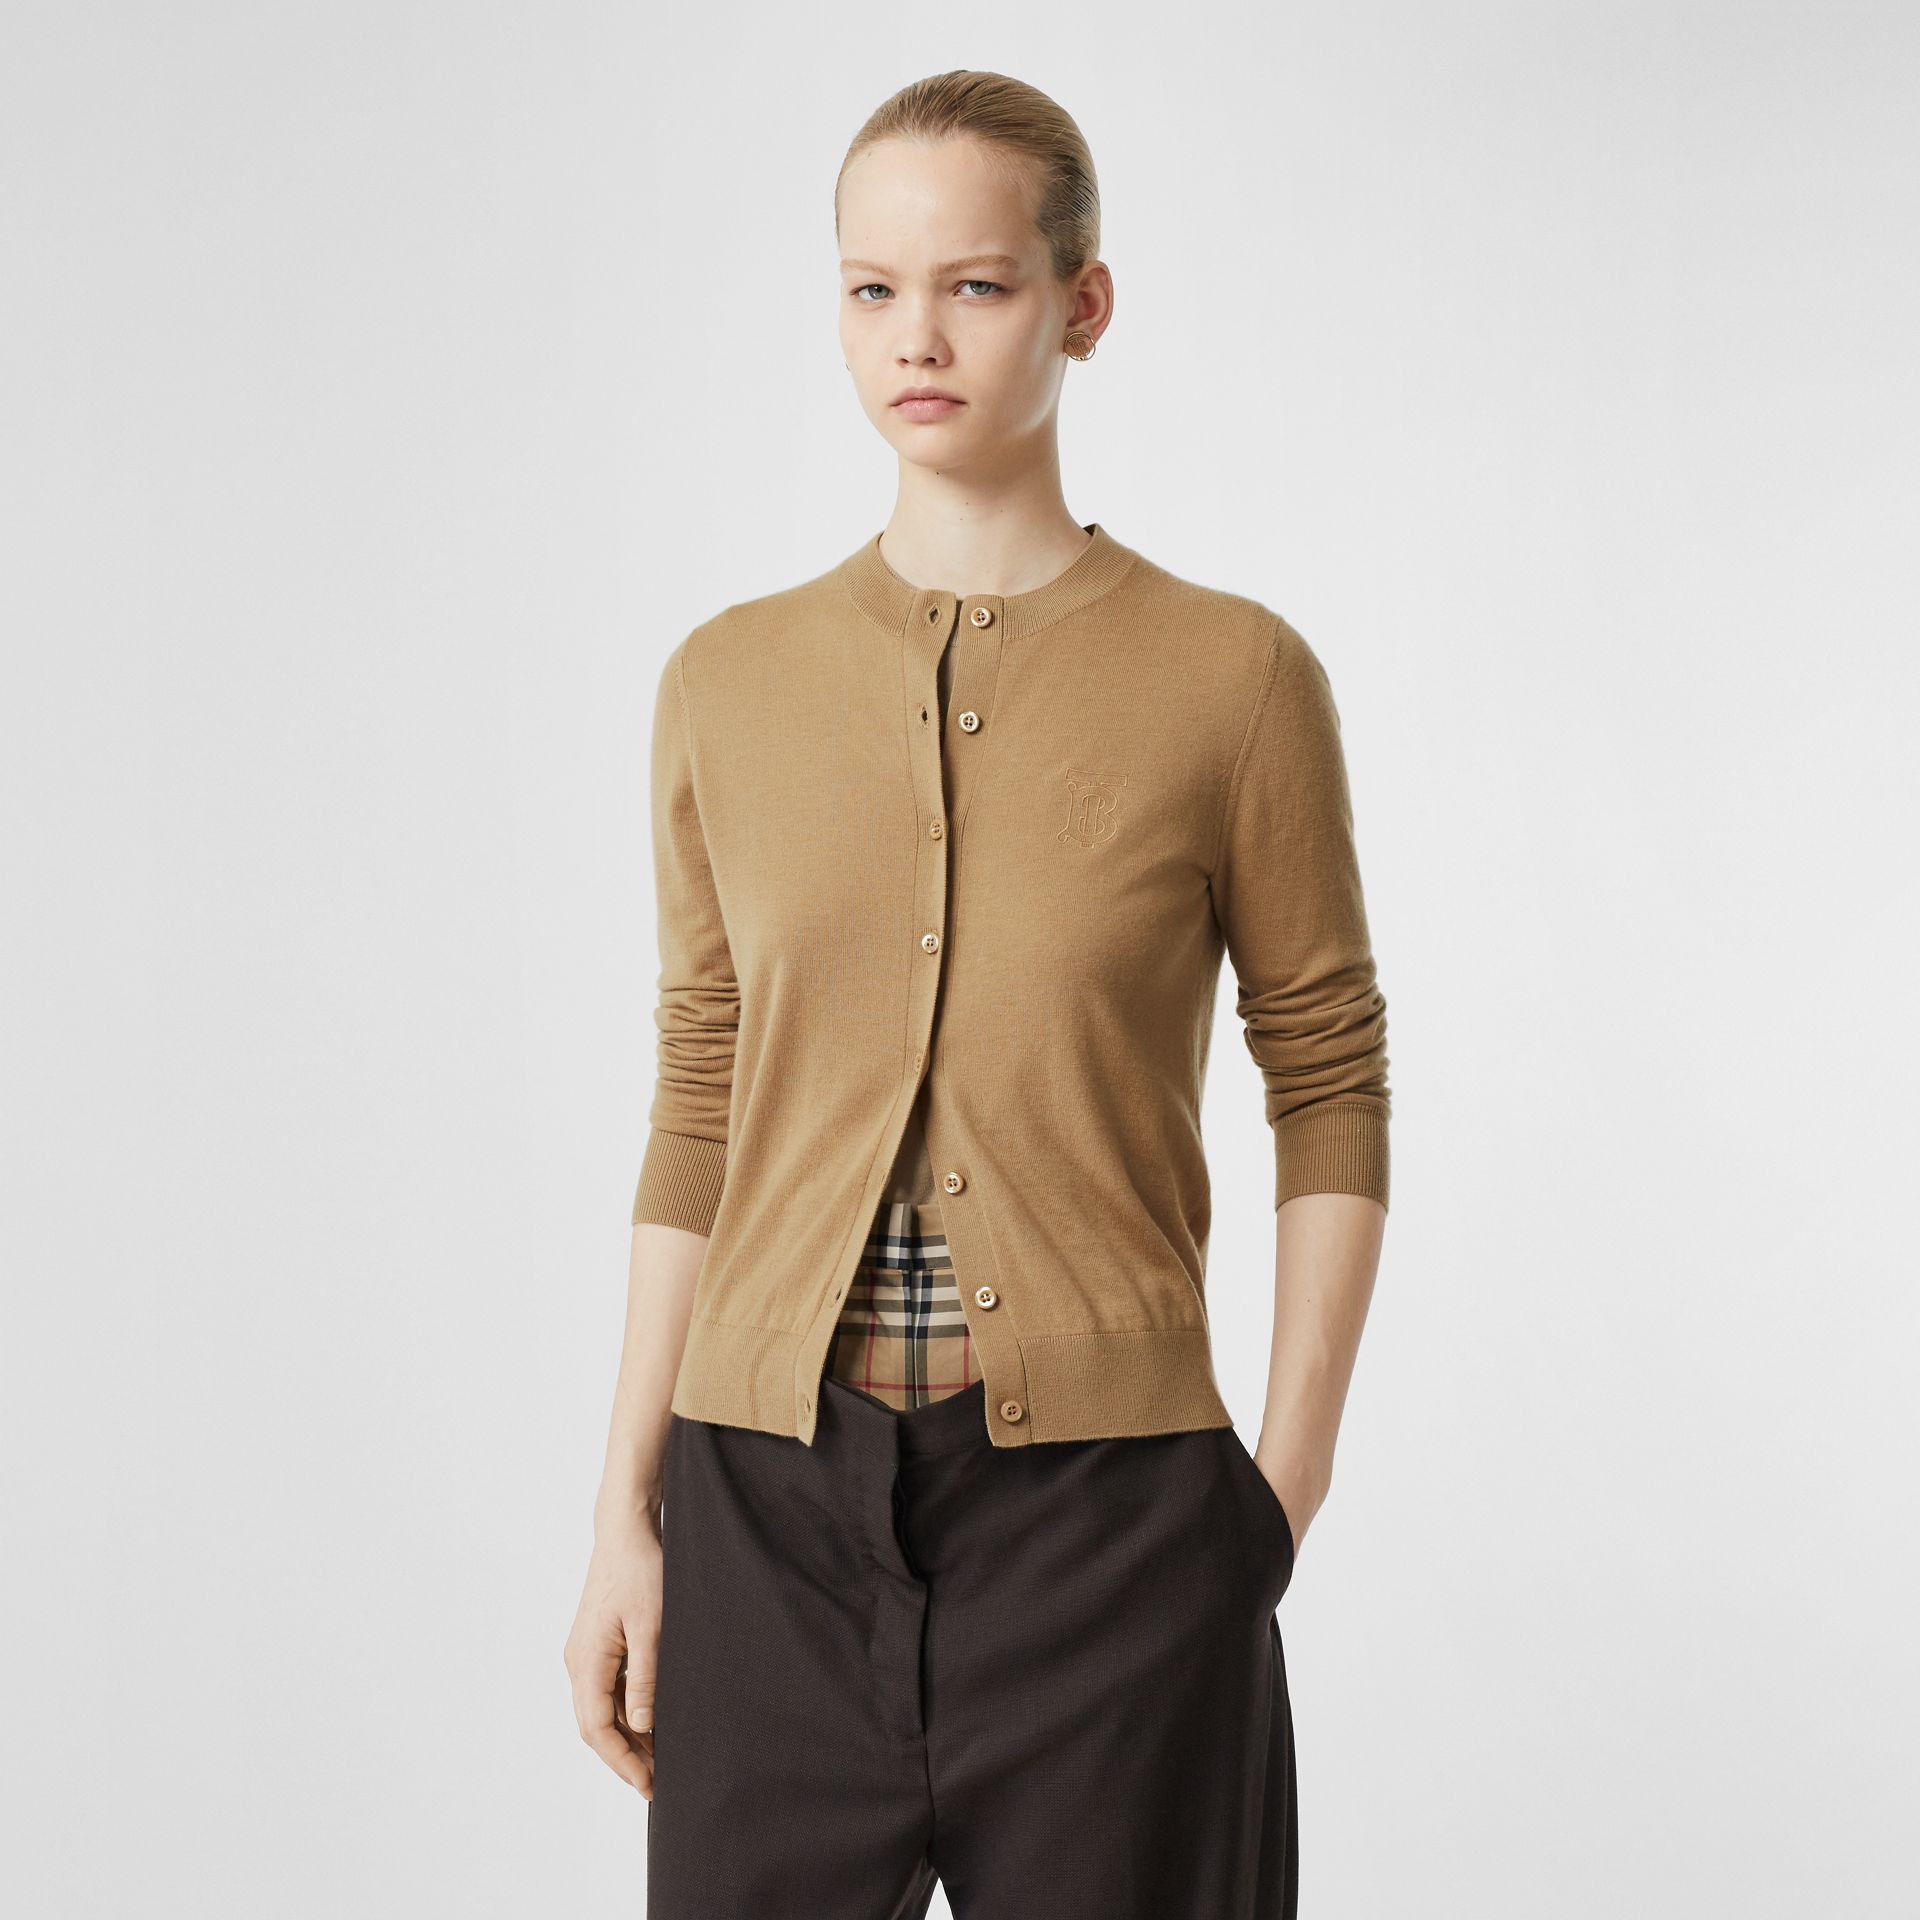 Monogram Motif Cashmere Cardigan in Camel - Women | Burberry - gallery image 4